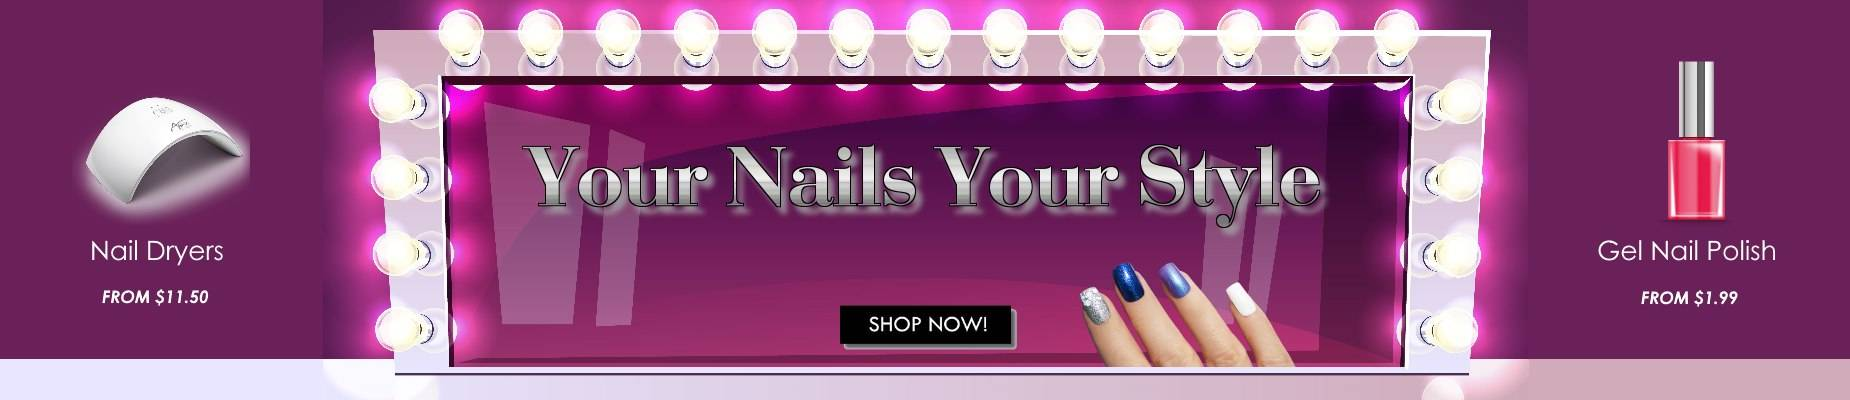 nails polish and gel at huge sale